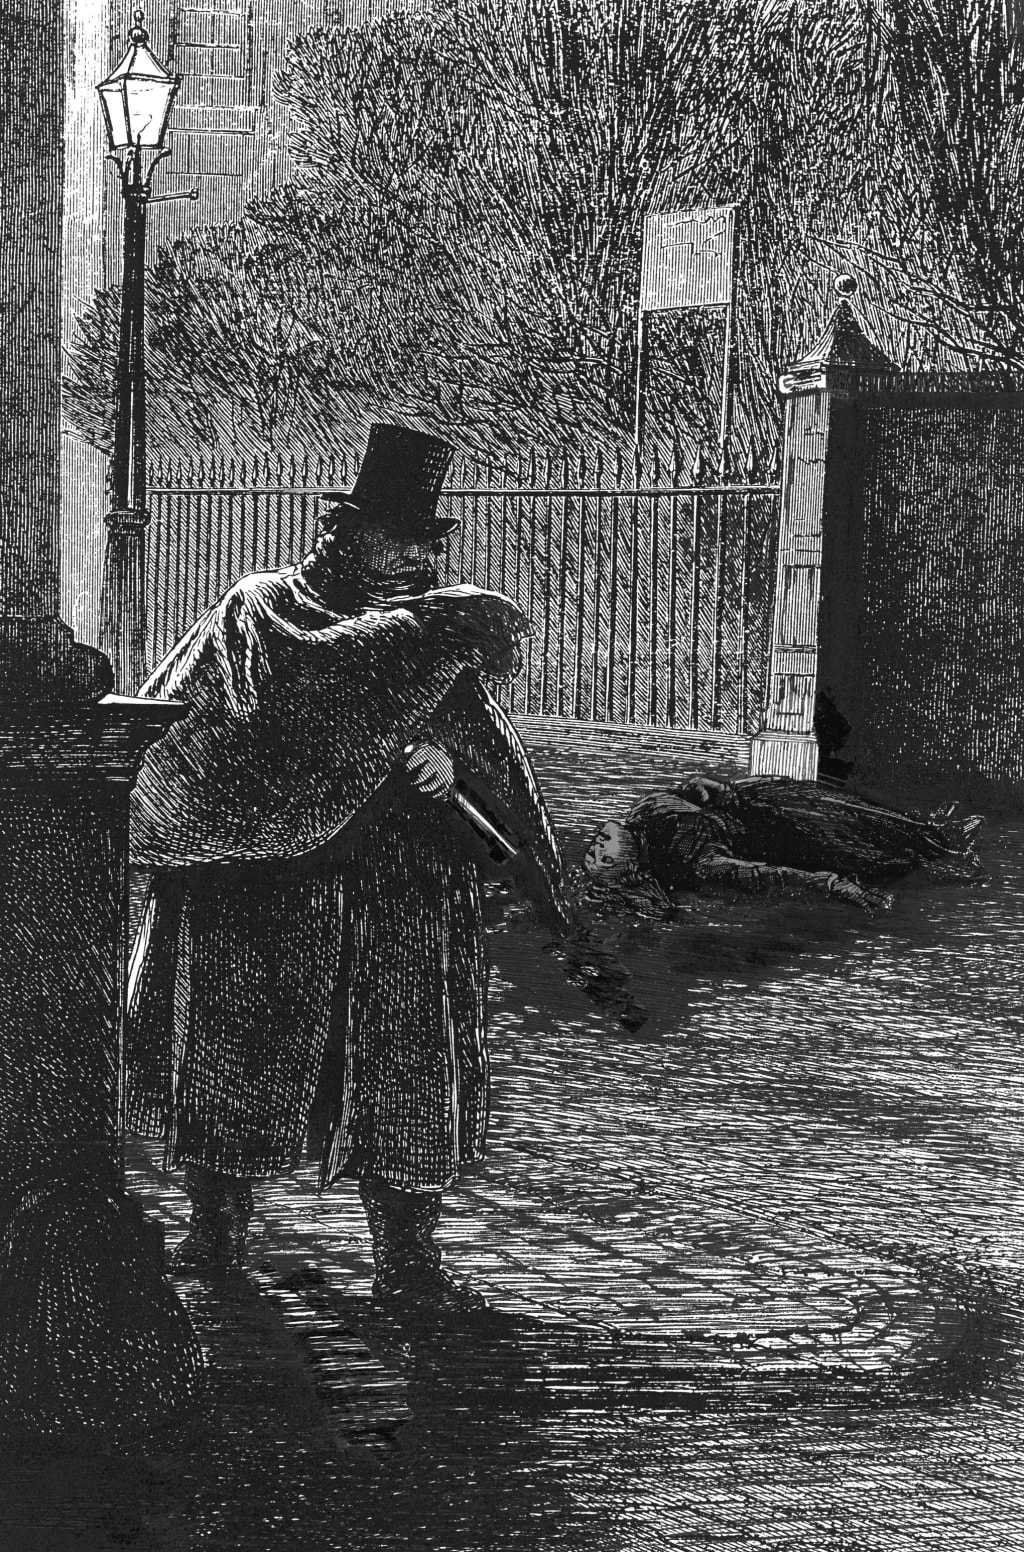 Jack the Ripper and the Sallie House